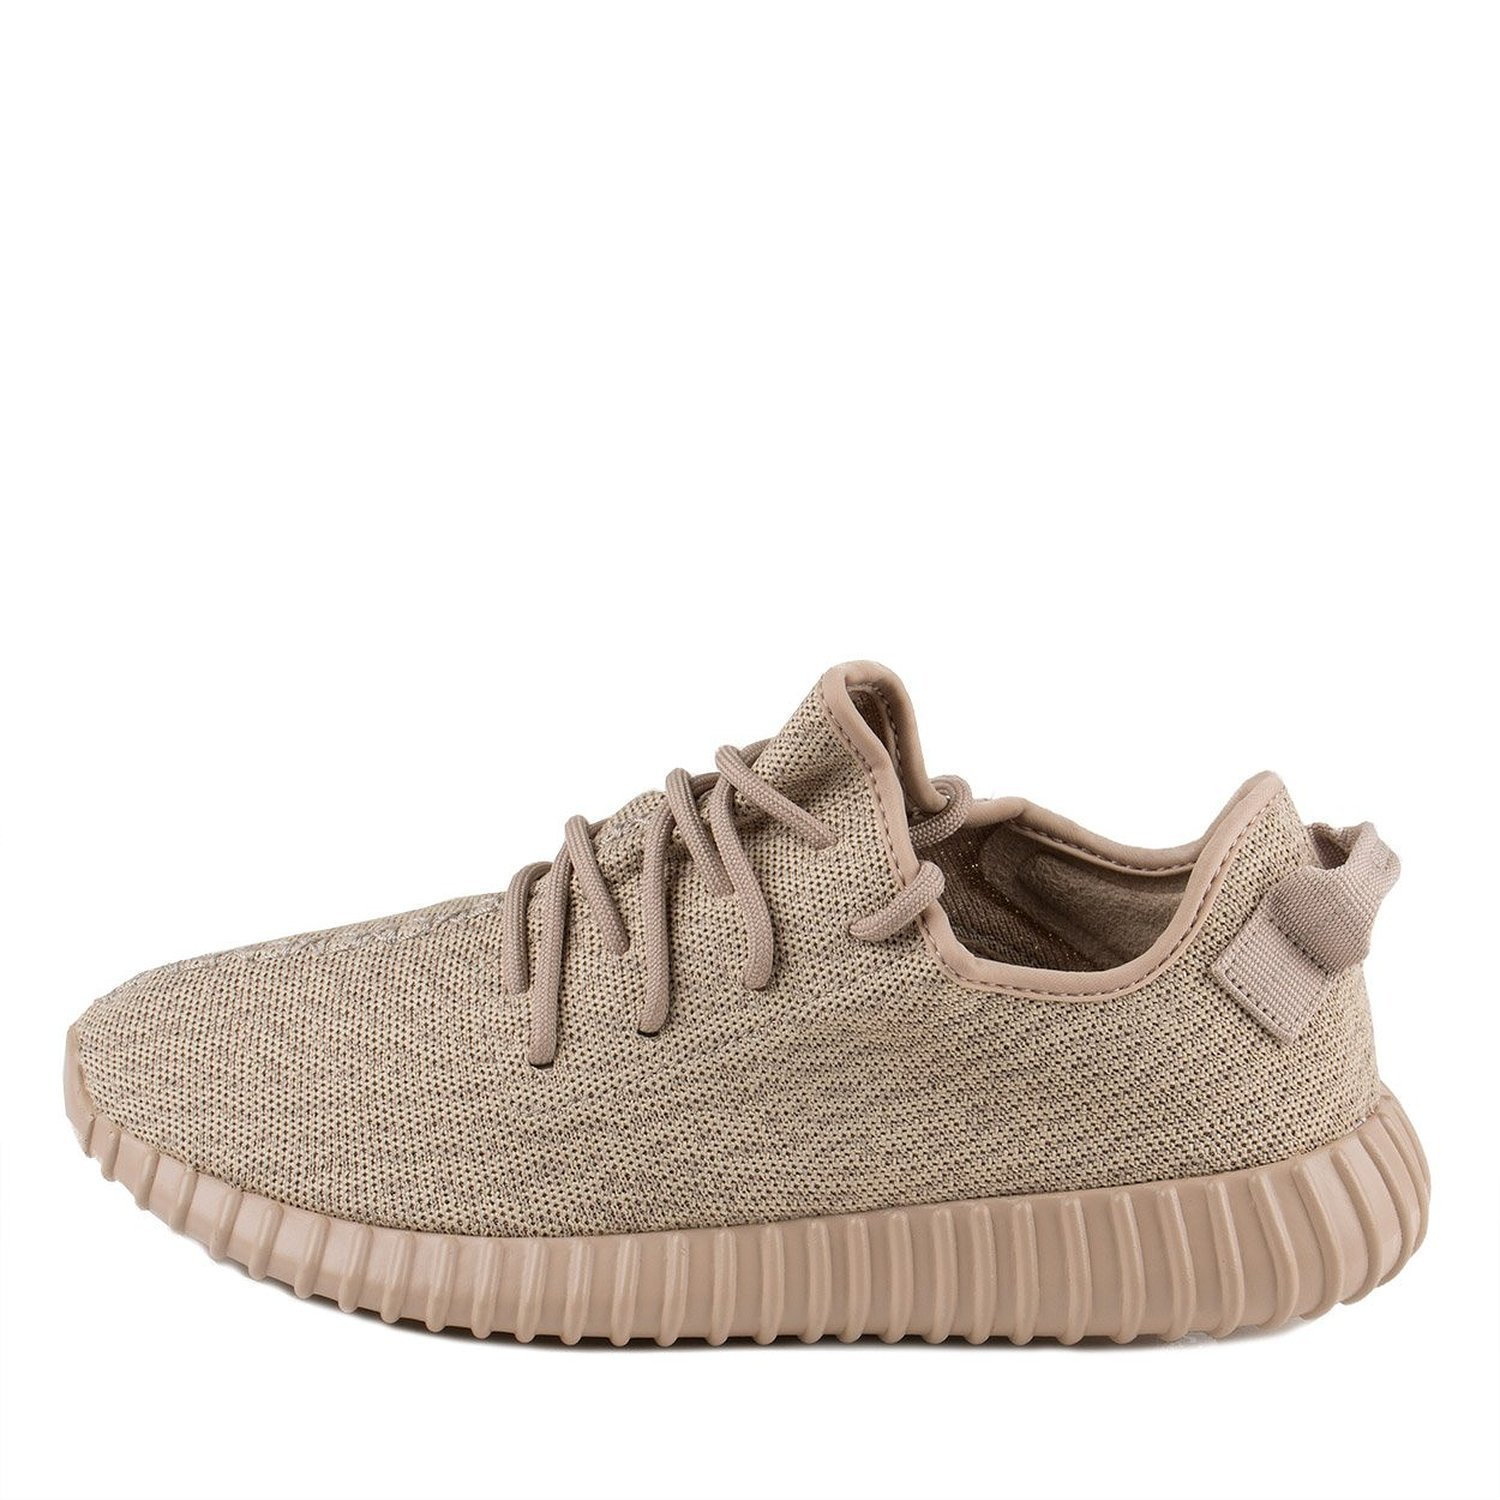 8e6972302cf1e1 Galleon - Adidas Mens Yeezy Boost 350